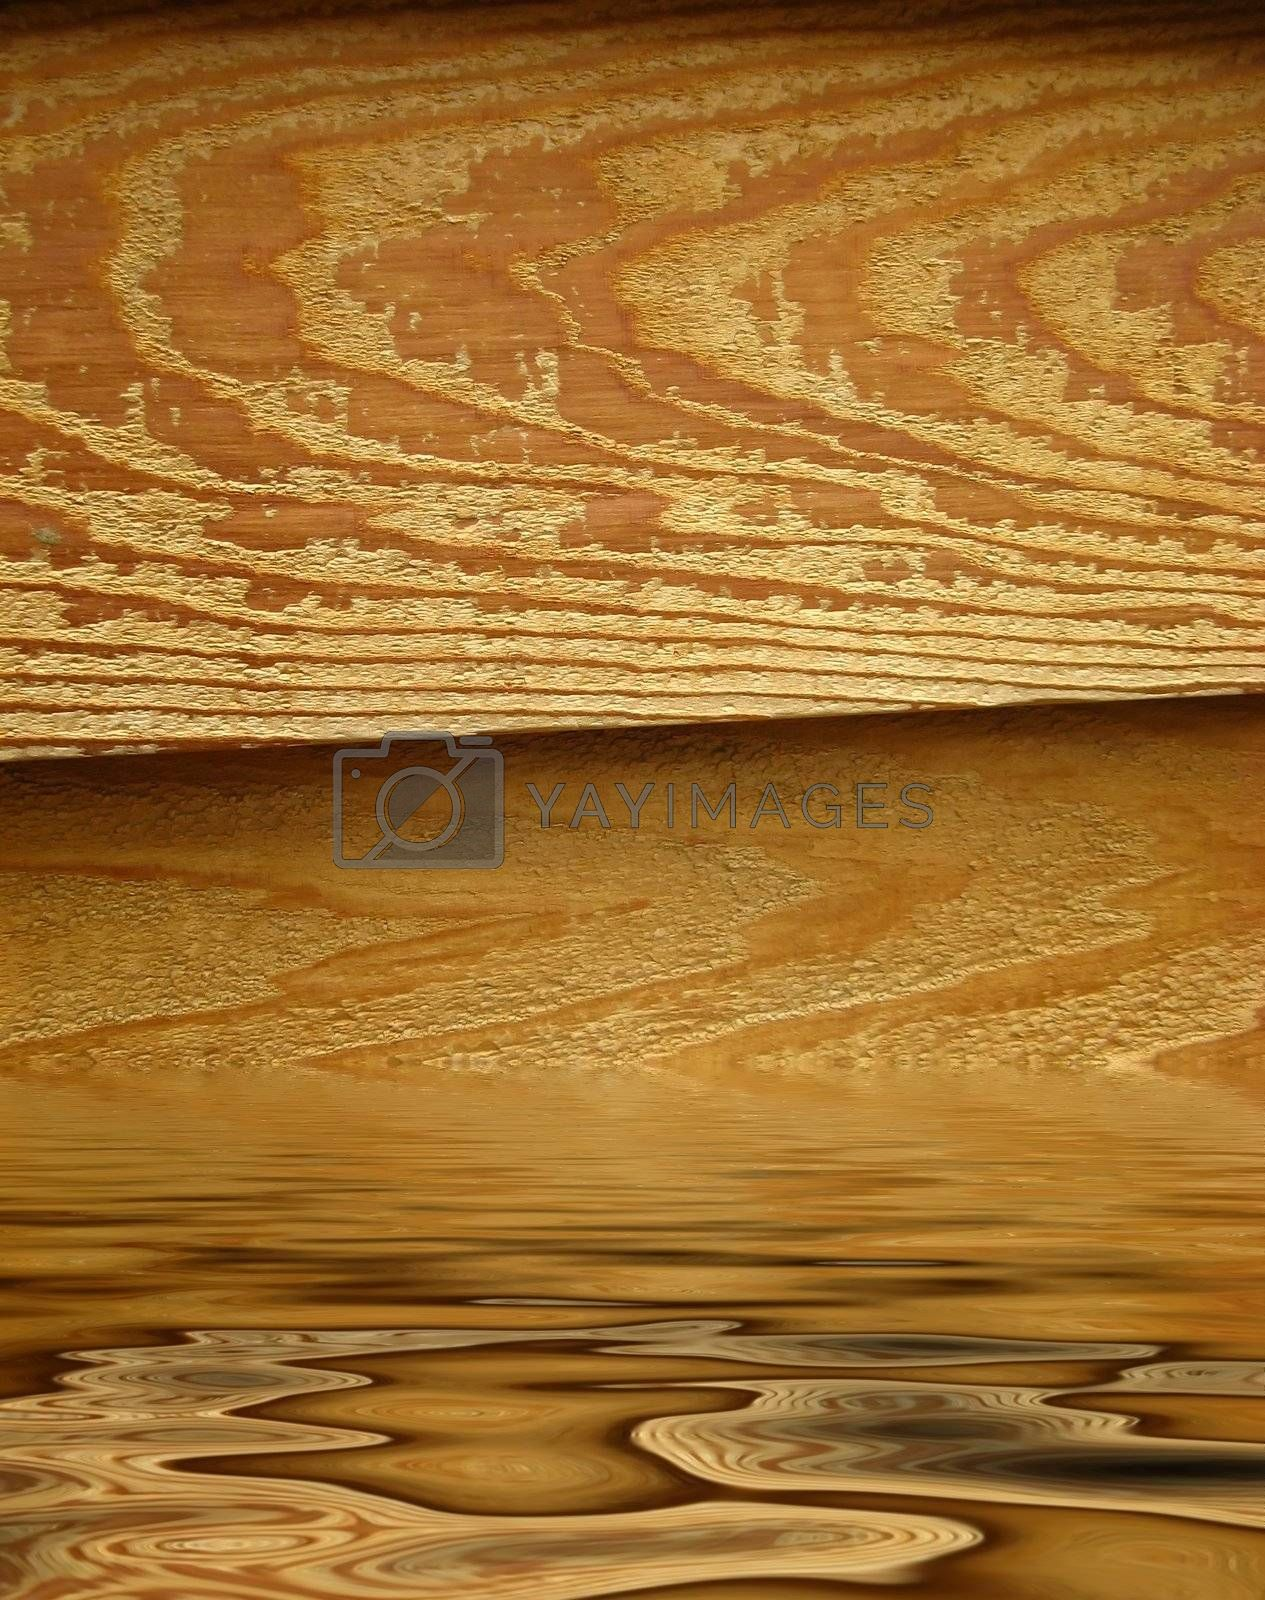 Wood with ripples